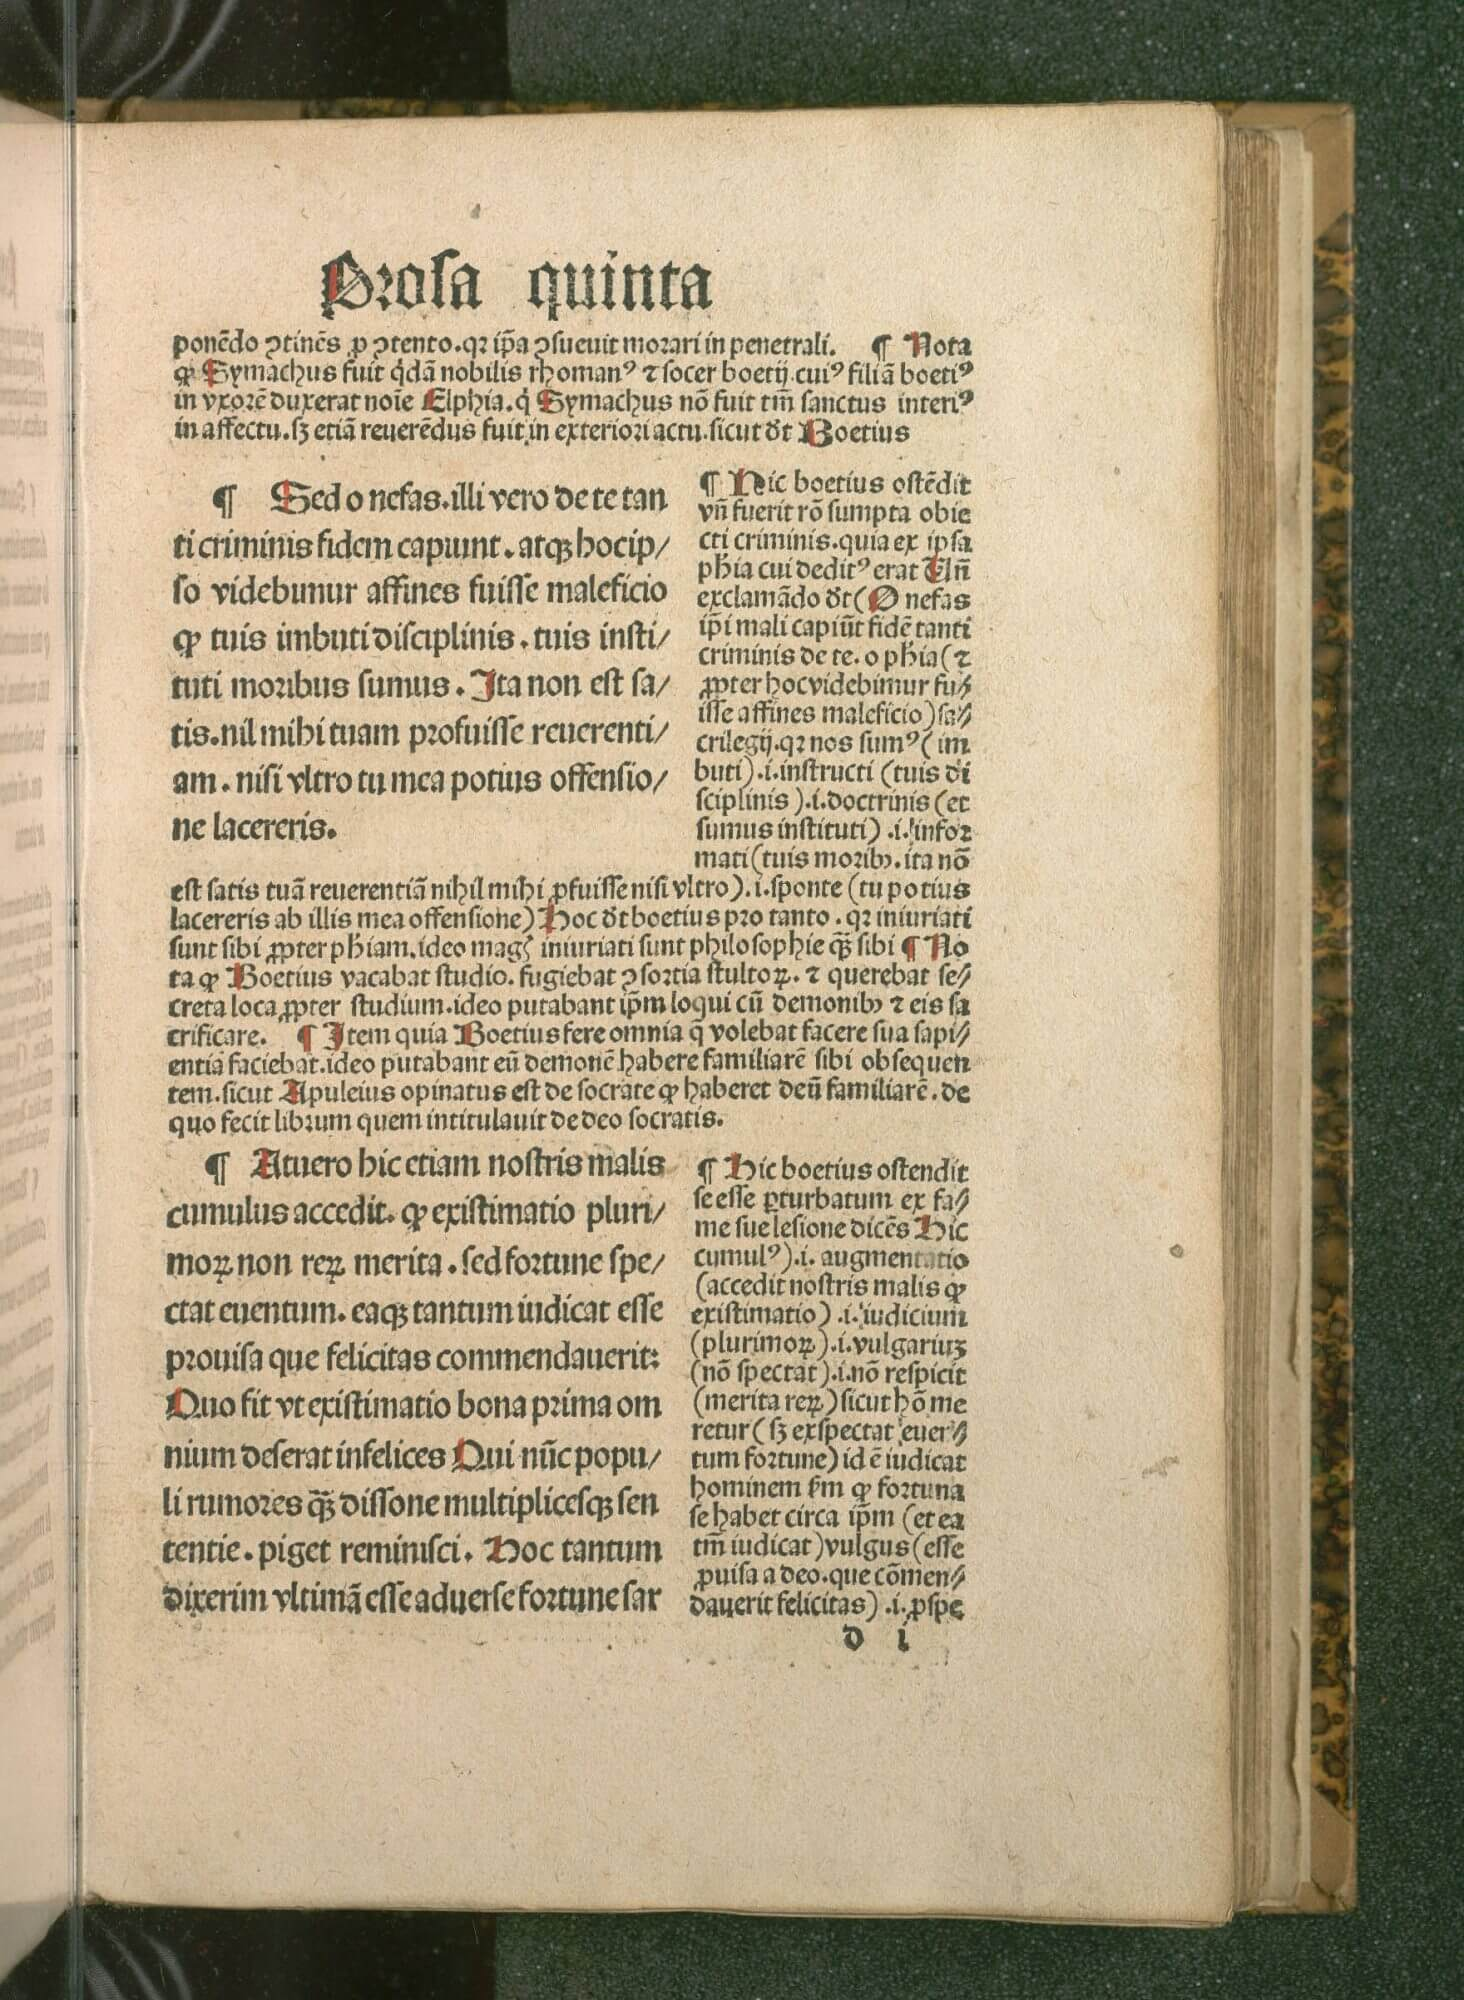 Boethius's De consolatione philosophiae, a popular medieval text, was often circulated with commentary. Here, Boethius's text is printed in a larger size, with the commentary surrounding it.